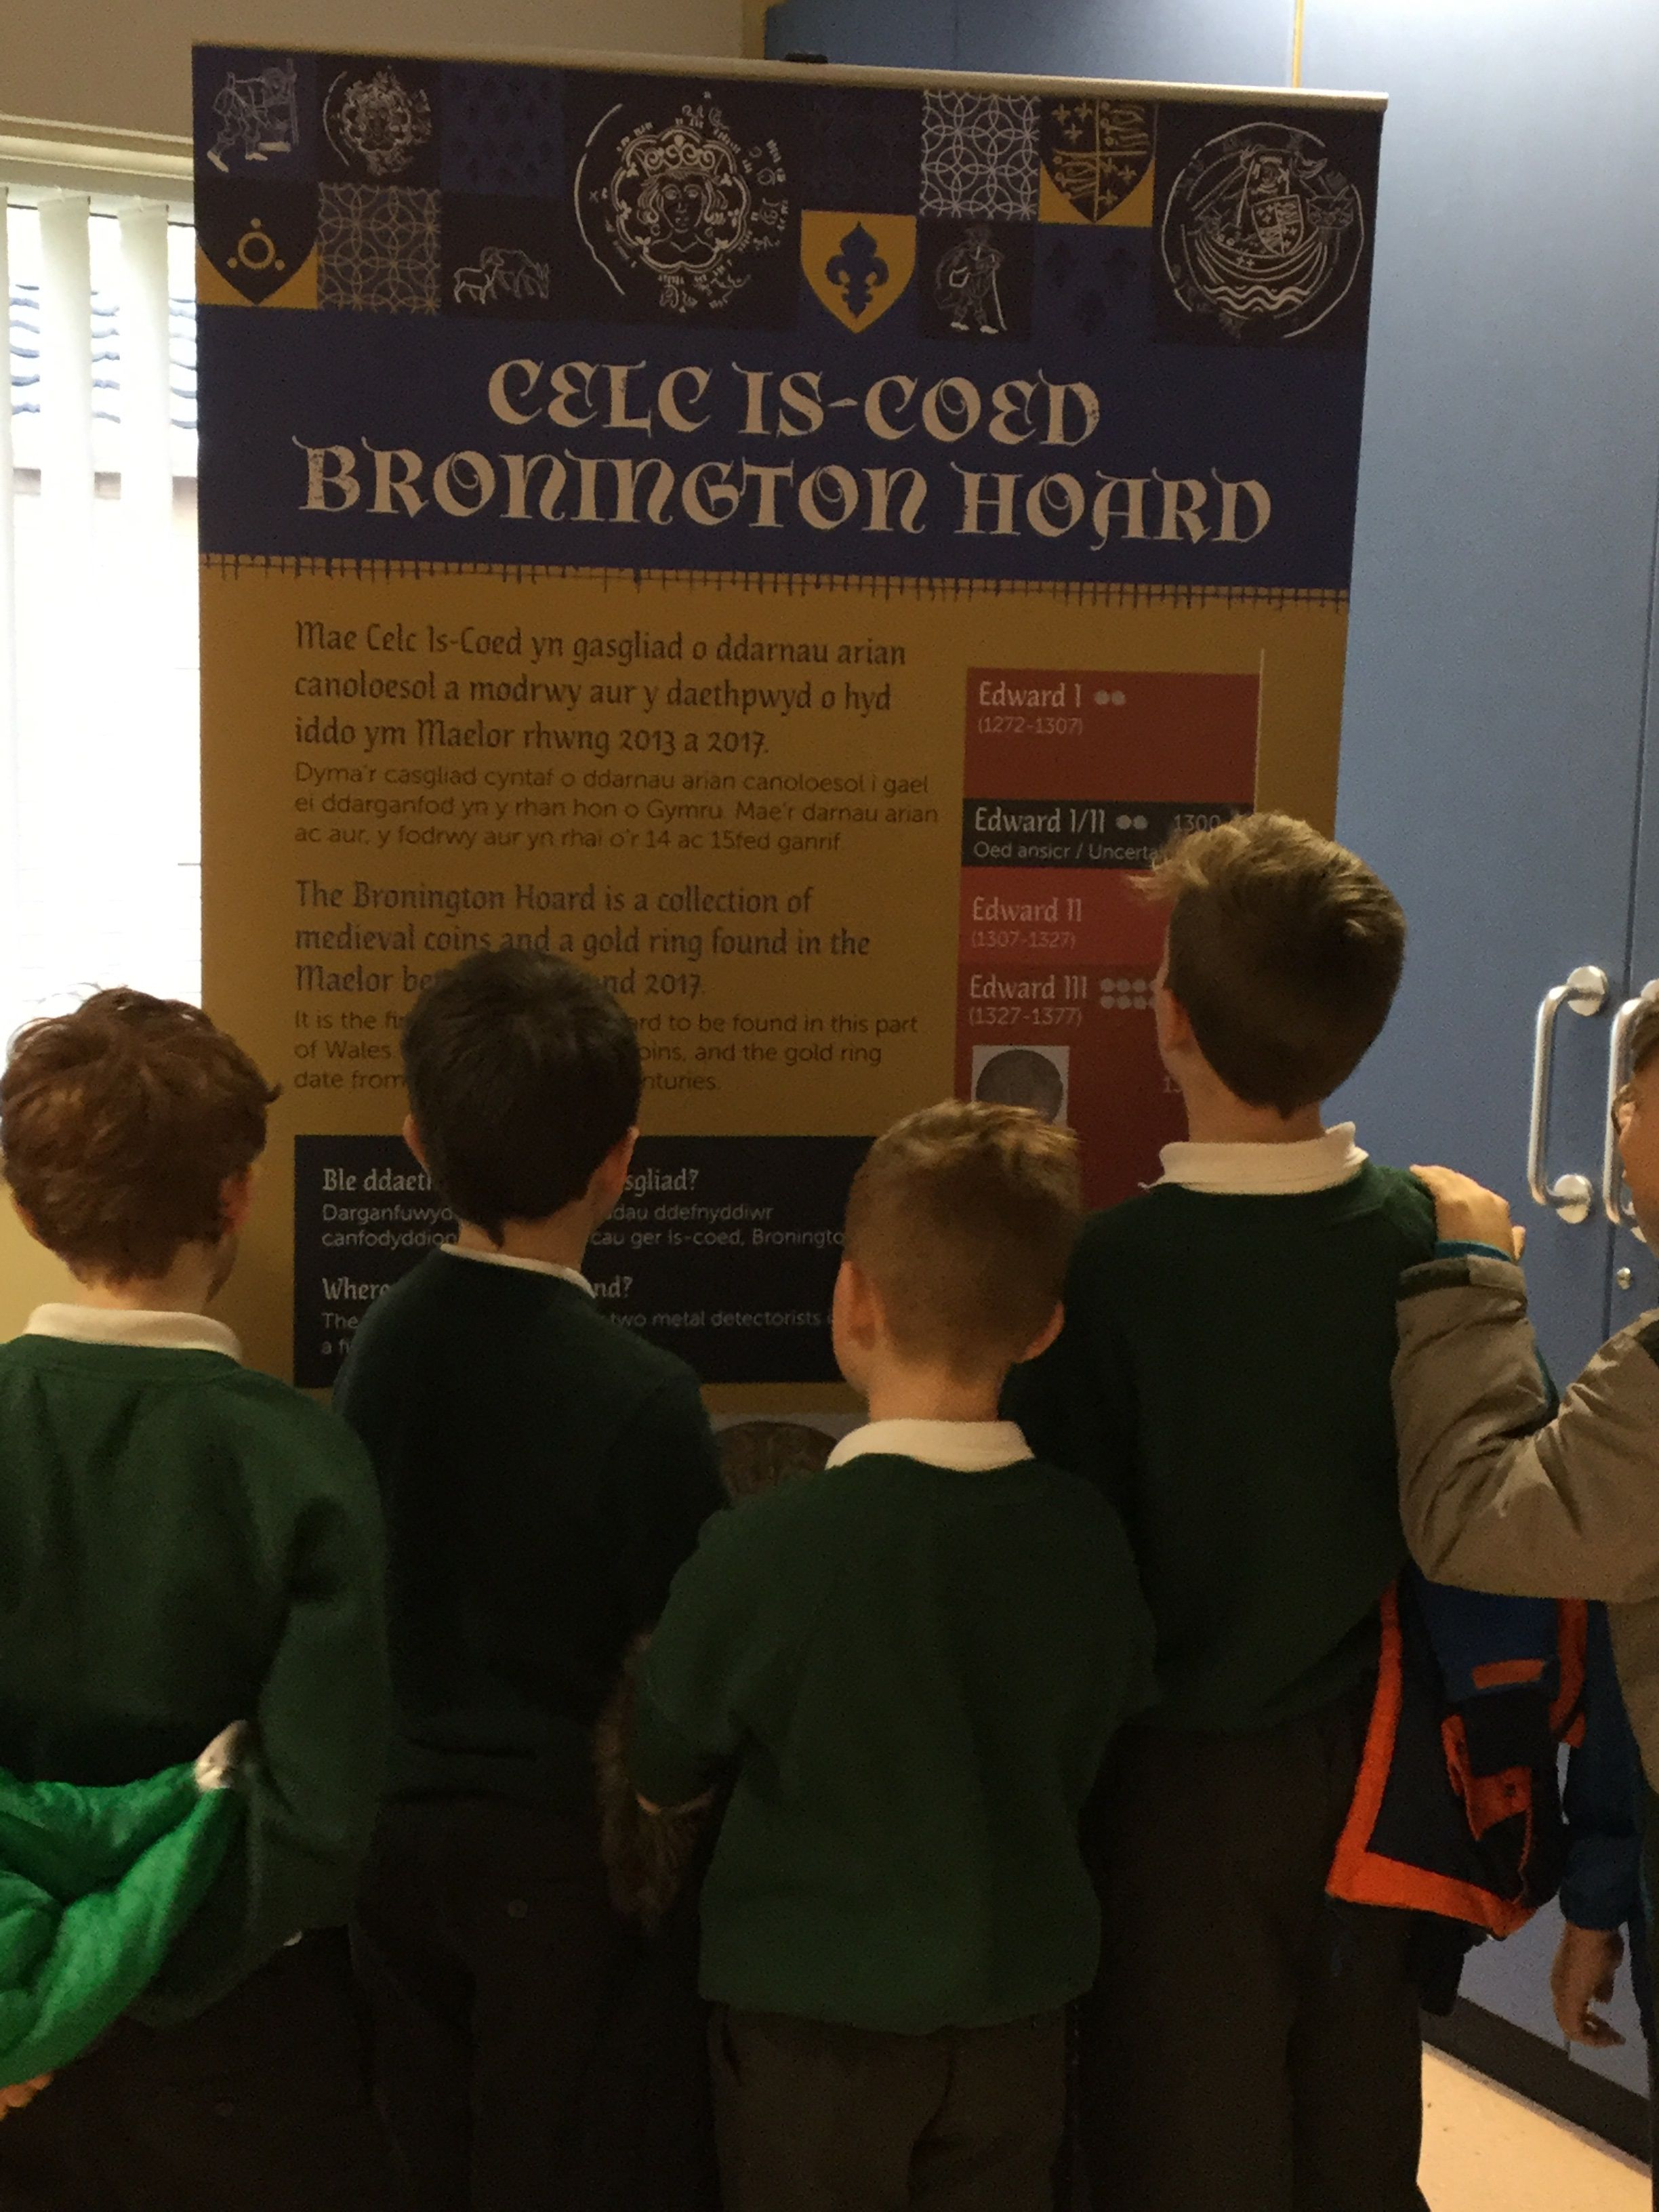 School children looking at an information panel on the Bronington Hoard